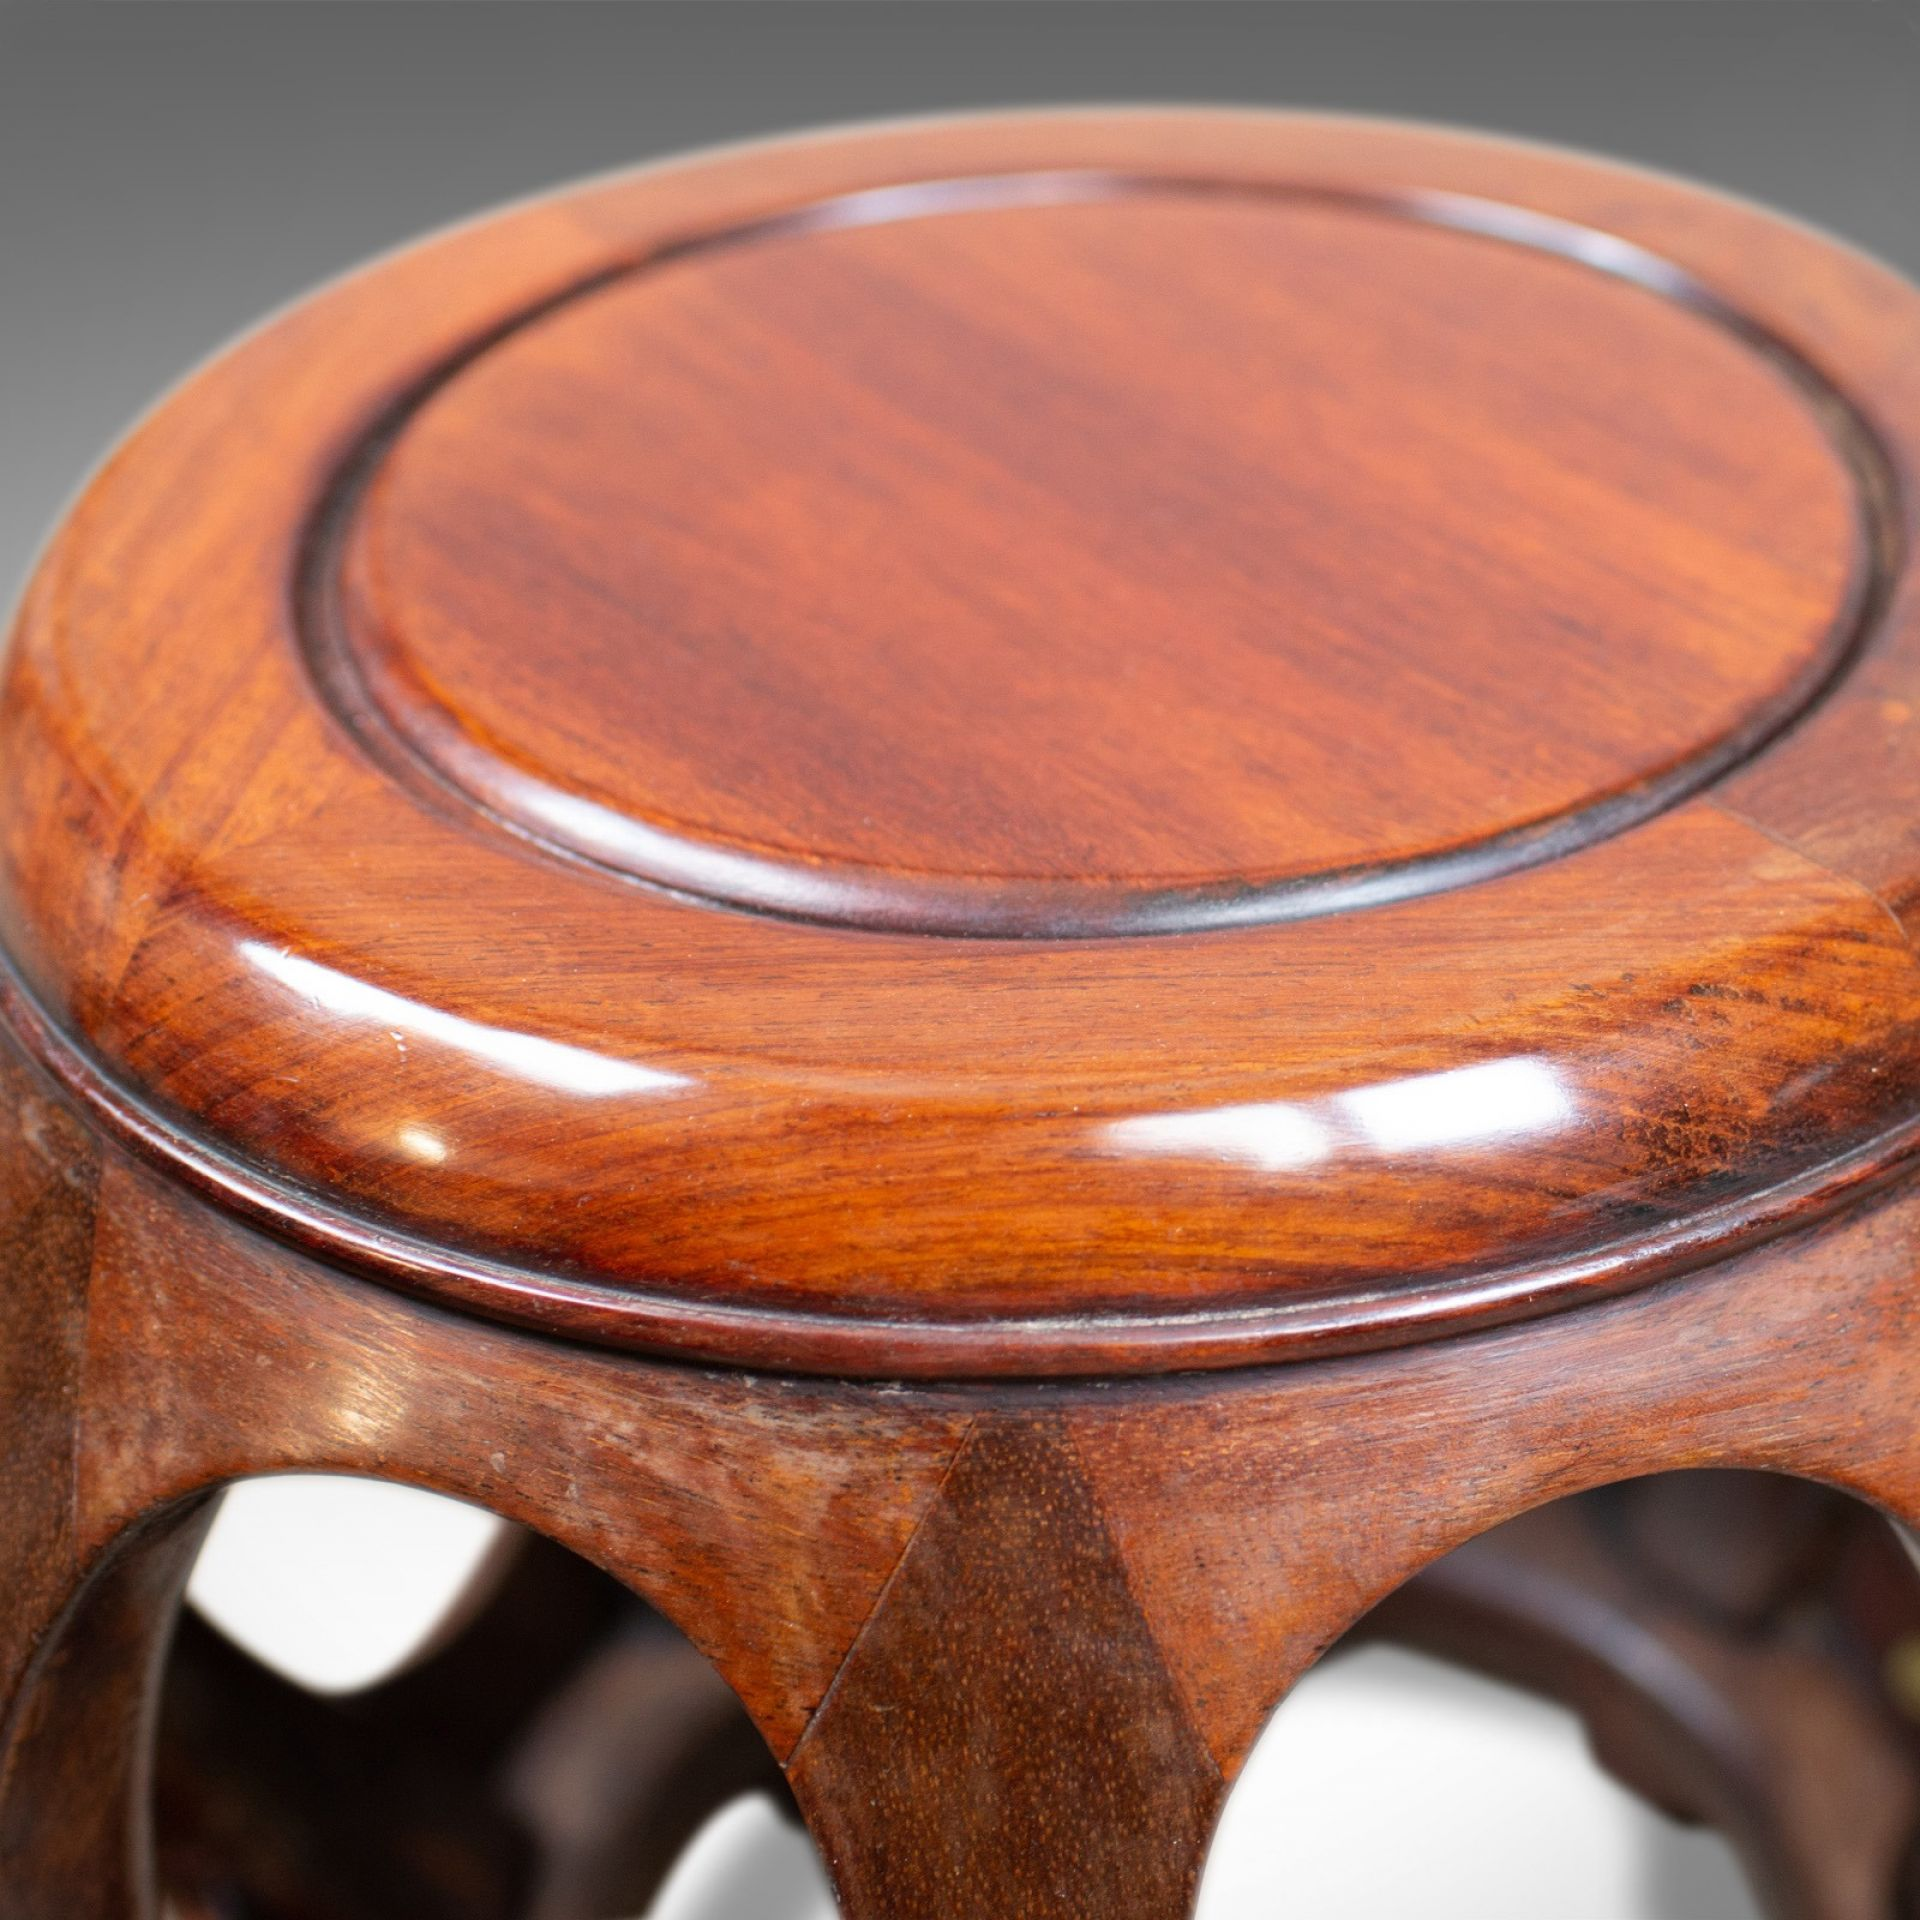 Pair of Vintage Chinese Barrel Side Tables, Huali Rosewood, Stools, C20th